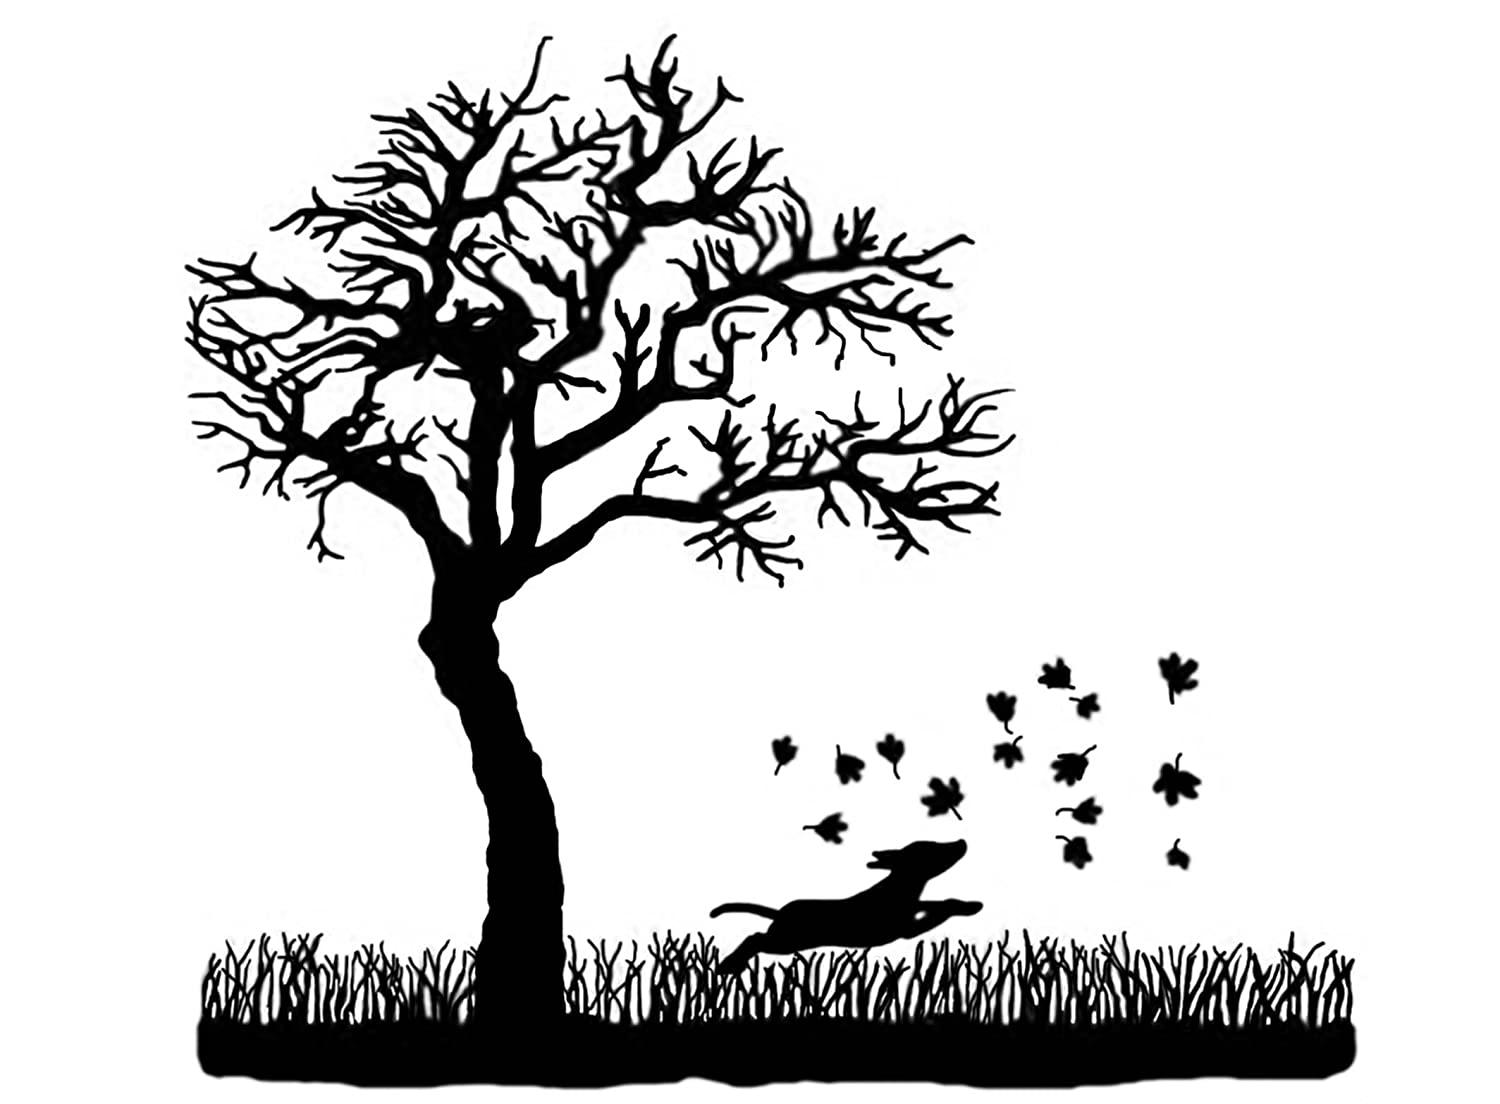 Tree Dog Chasing Leaves 4' - Black 15CC506 Fused Glass Decals Captive Decals